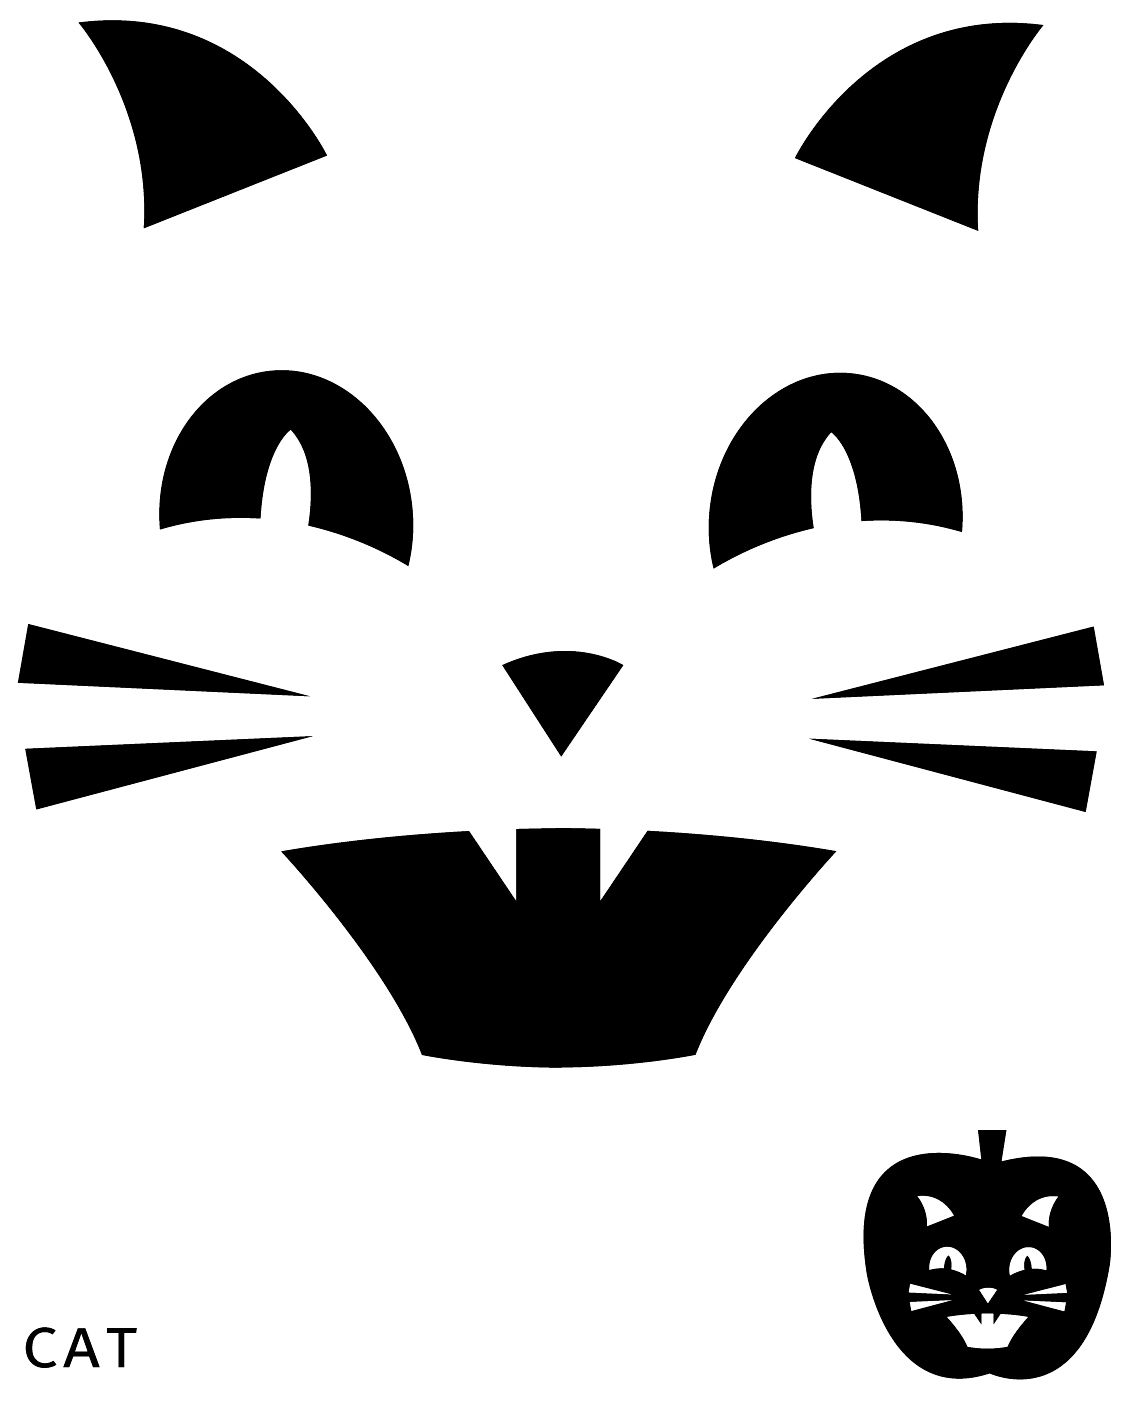 Top cat face pumpkin carving pattern stencil template designs for ...